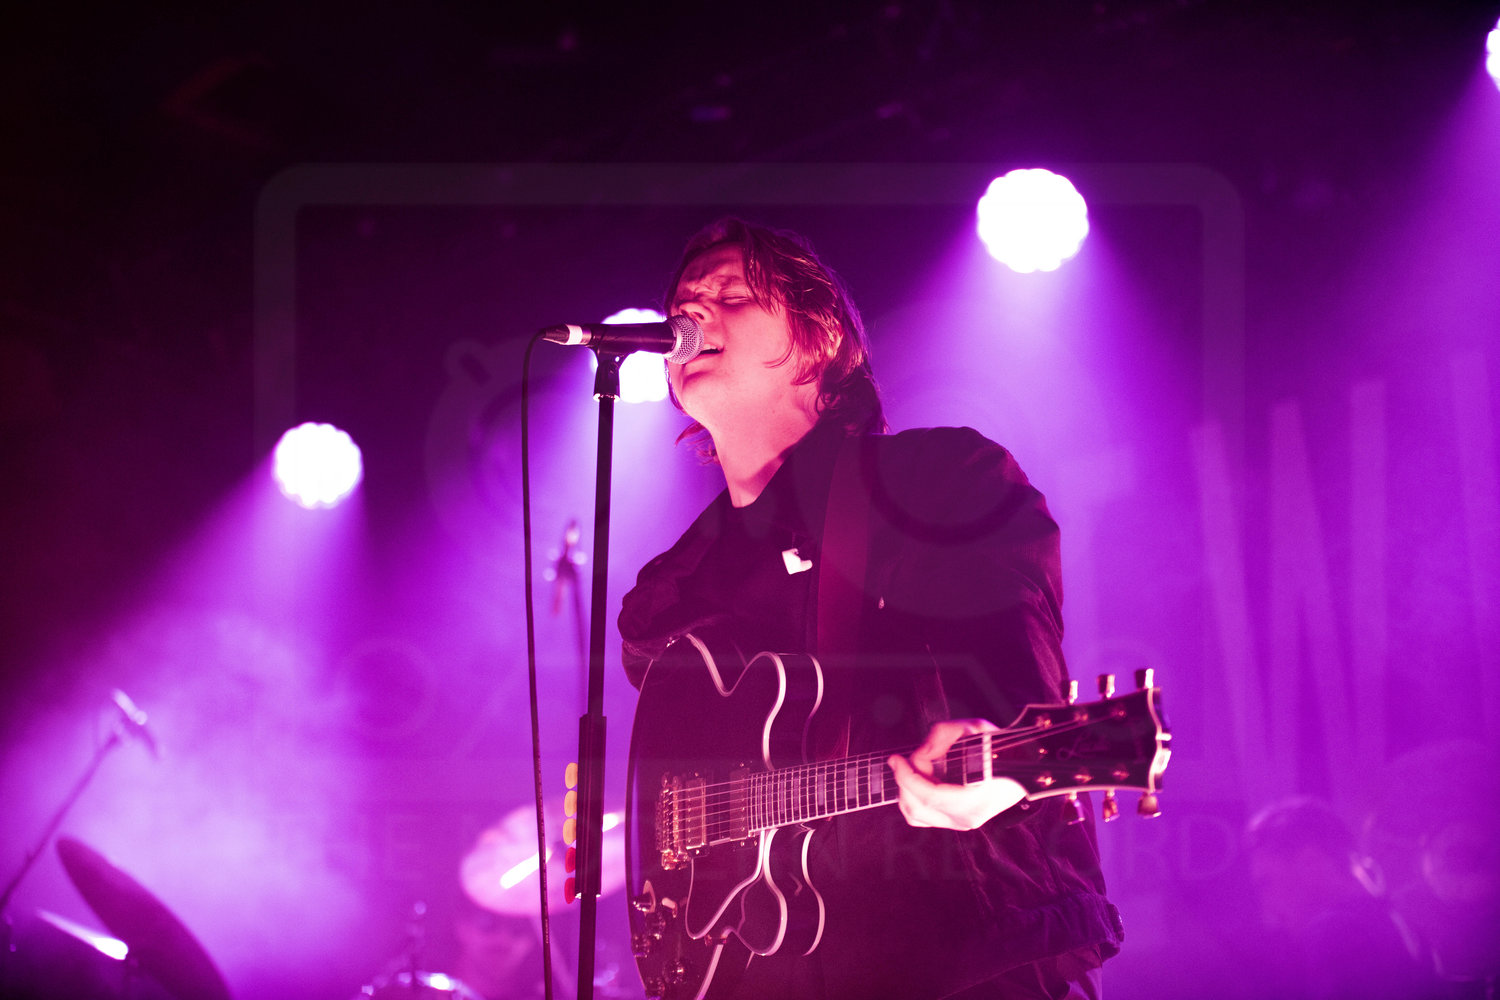 LEWIS CAPALDI AT THE BARROWLAND BALLROOM, GLASGOW - 11.11.18  PICTURE BY ALEXSANDRO COSTA